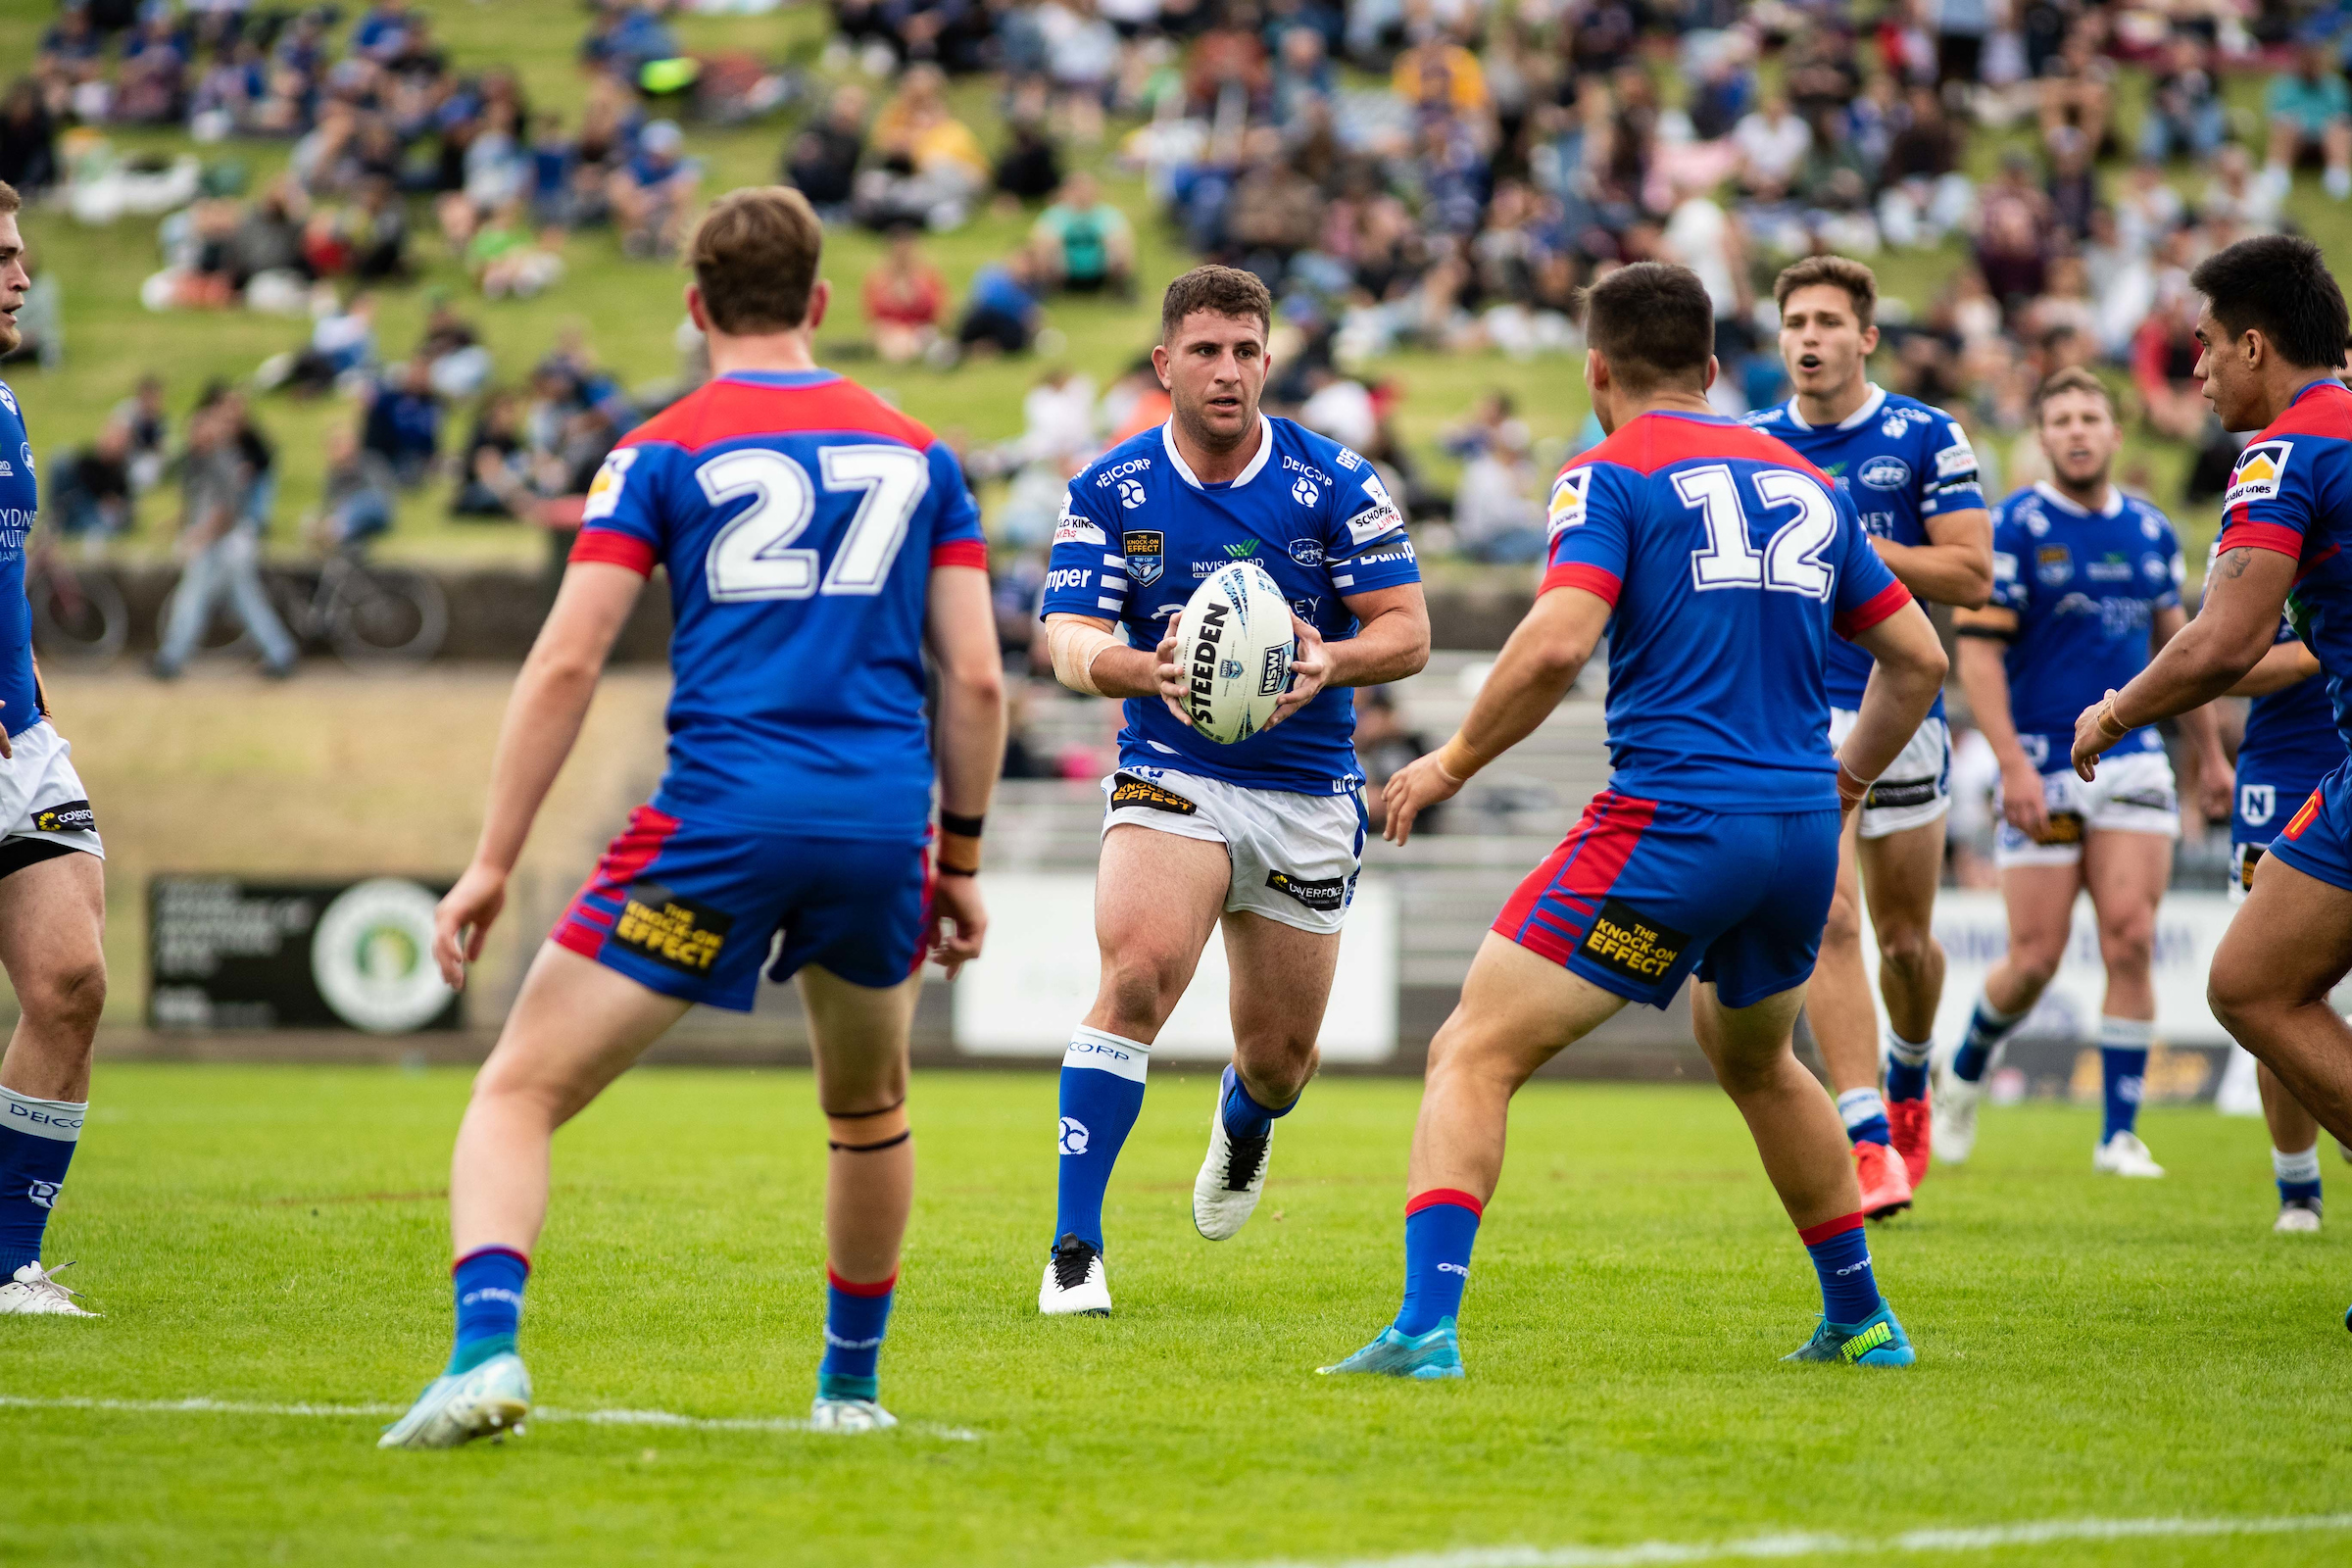 April 17, 2021 - Marrickville, NSW, Australia, Billy Magoulias of the Newtown Jets during the Round 5 NSW Cup match between  the Newtown Jets and the Newcastle Knights Henson Park in Marrickville, NSW. (Mario Facchini/mafphotography)